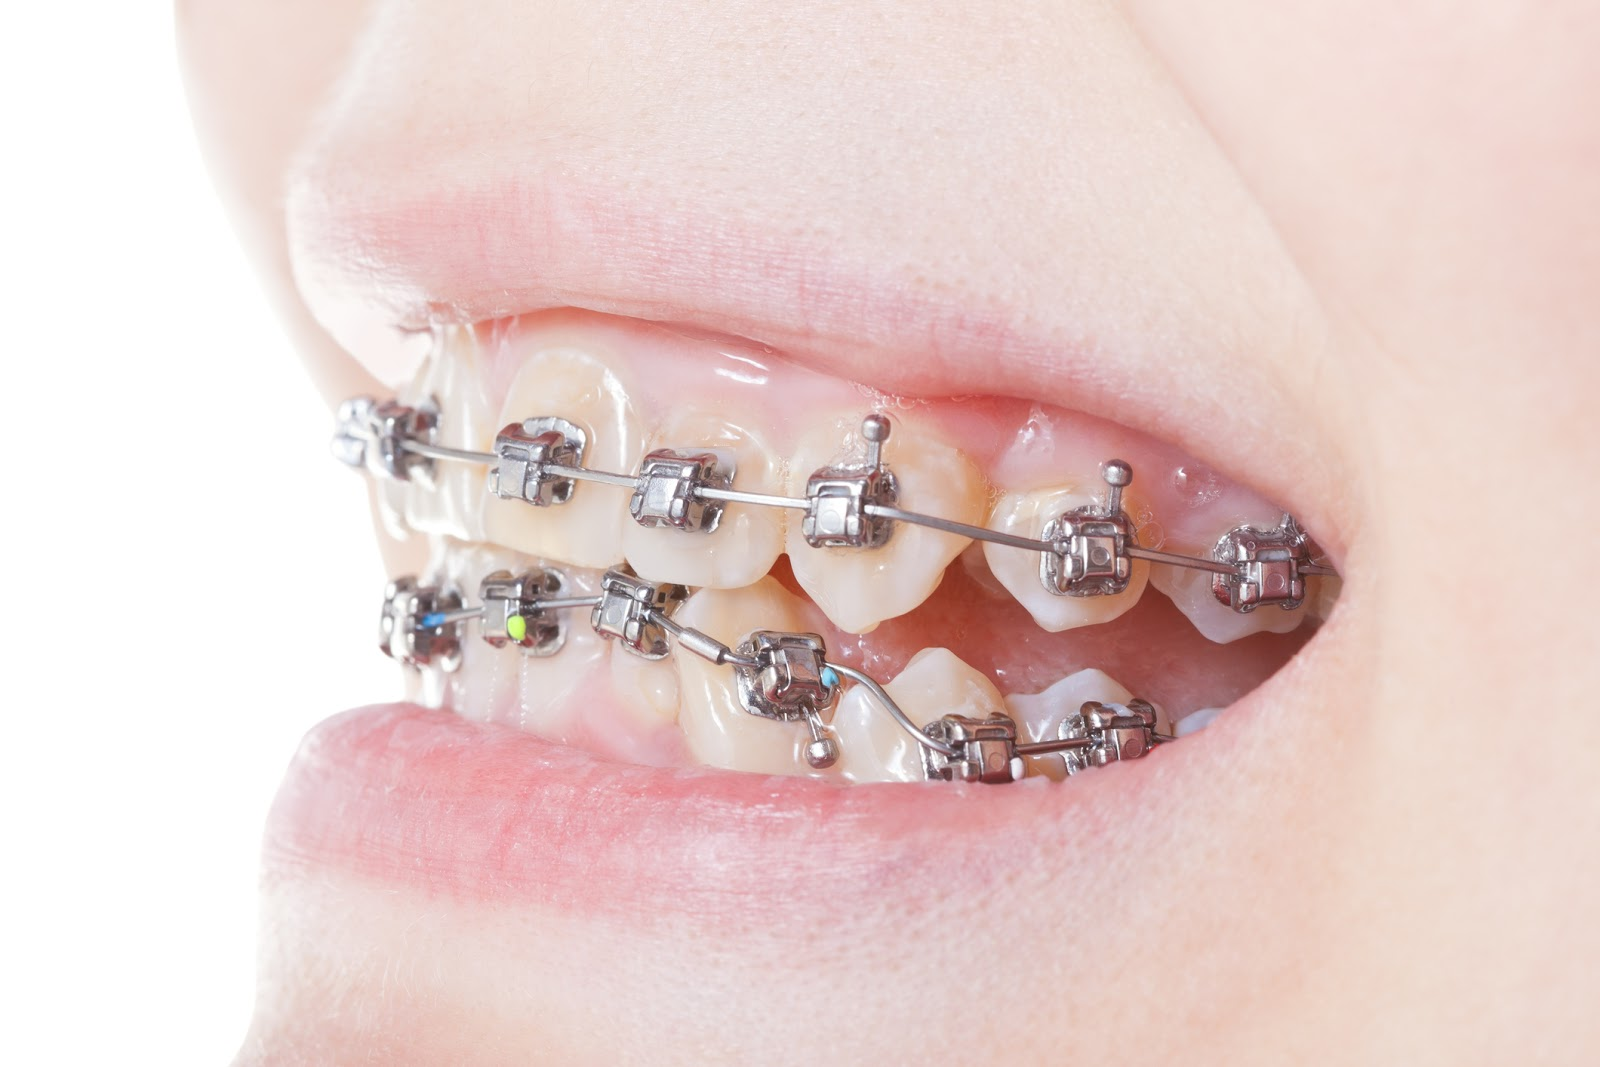 This is the image for the news article titled The Dangers of DIY Braces